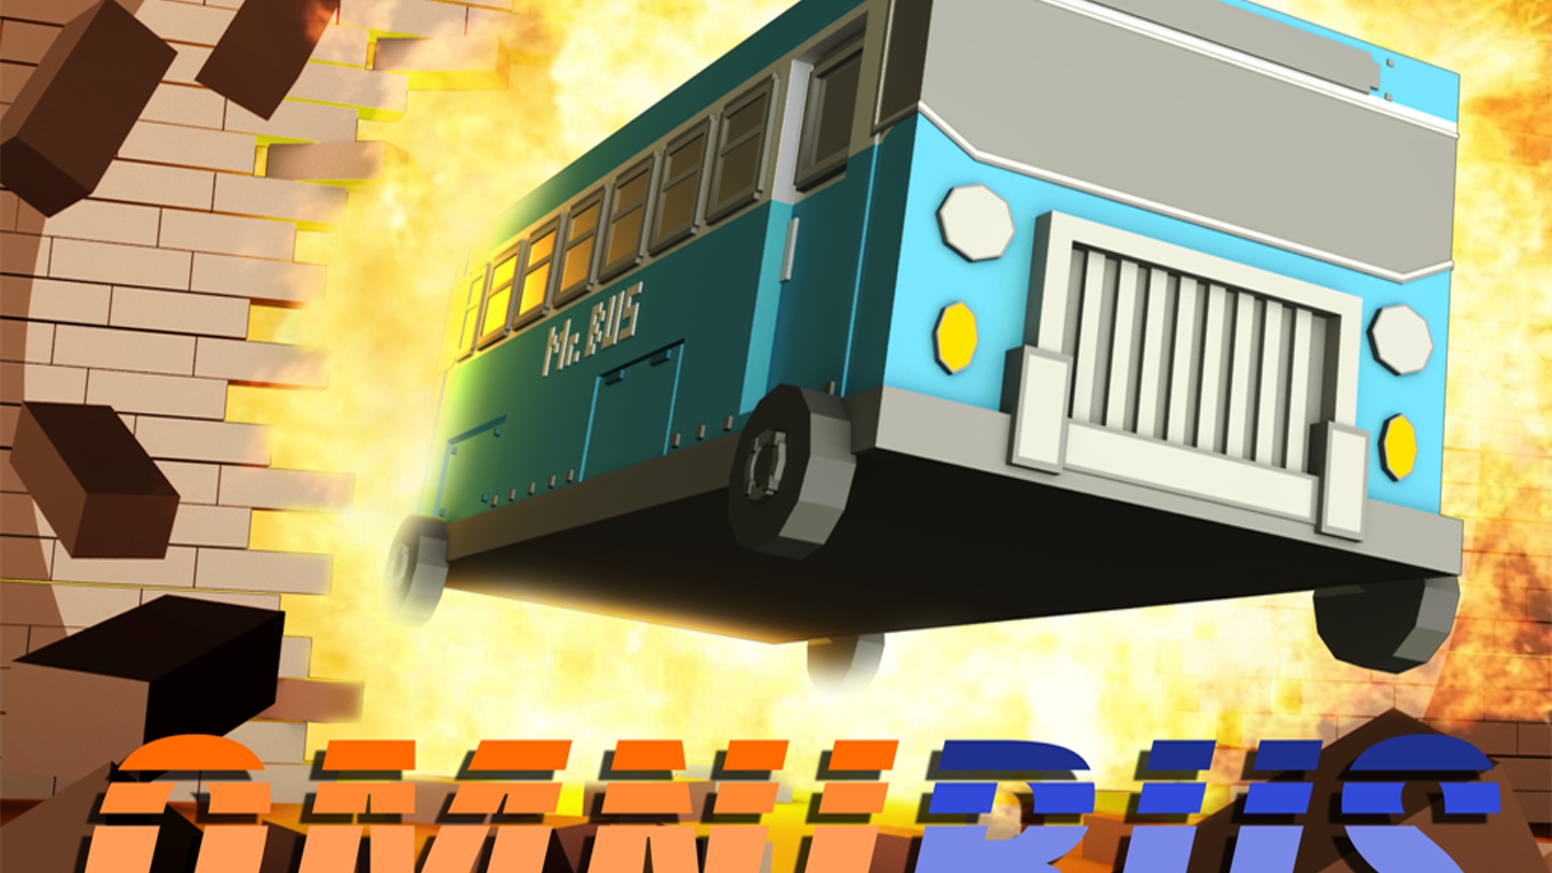 Fast-paced PS1-style physics game about OmniBus, an unstoppable force of nature!